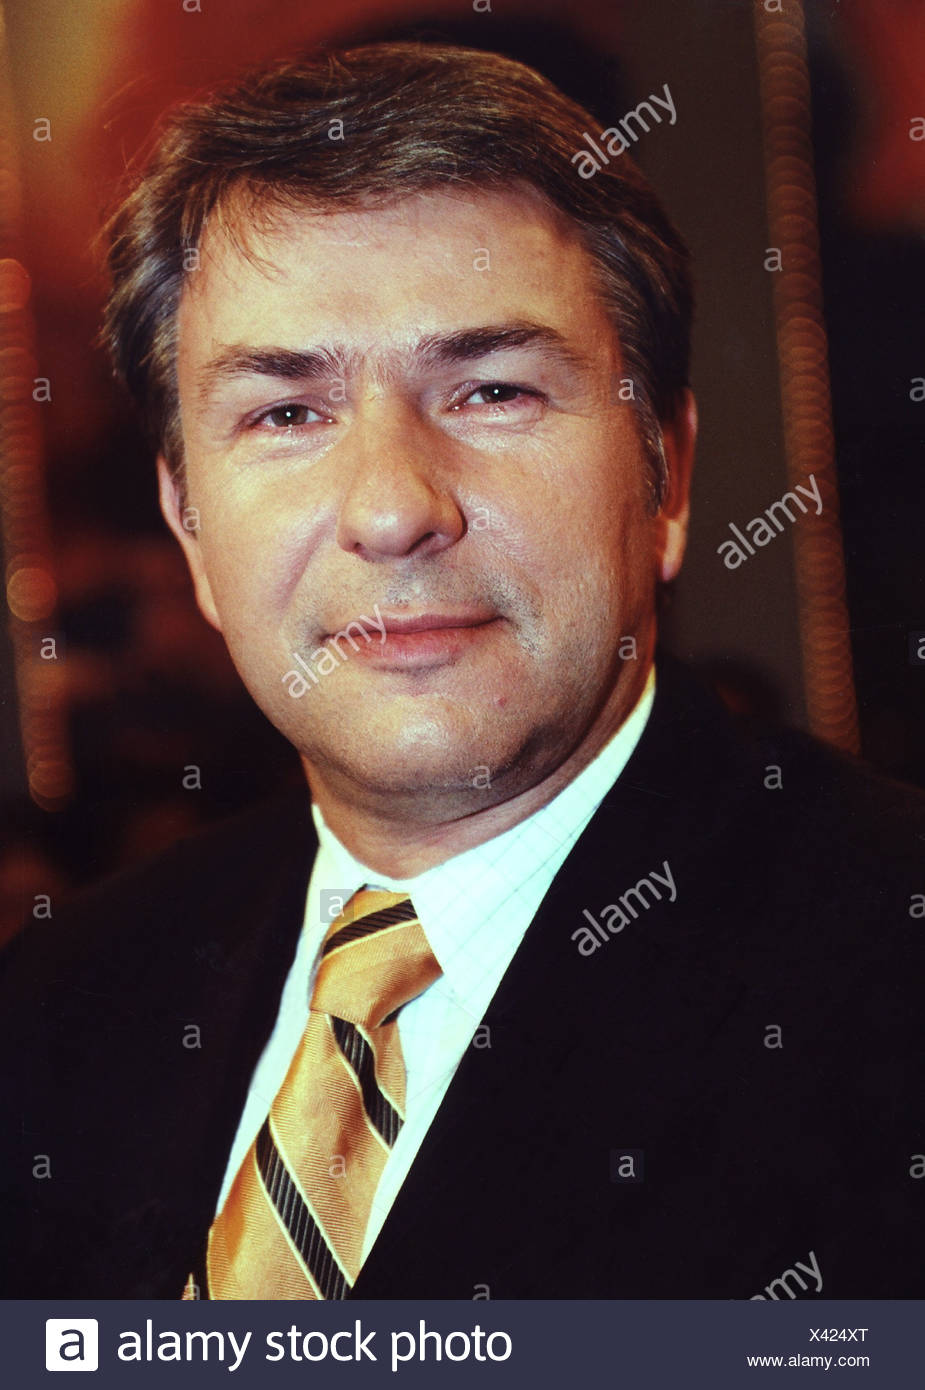 Wowereit, Klaus, * 1.10.1953, German politician (SPD), portrait, 2002, Stock Photo